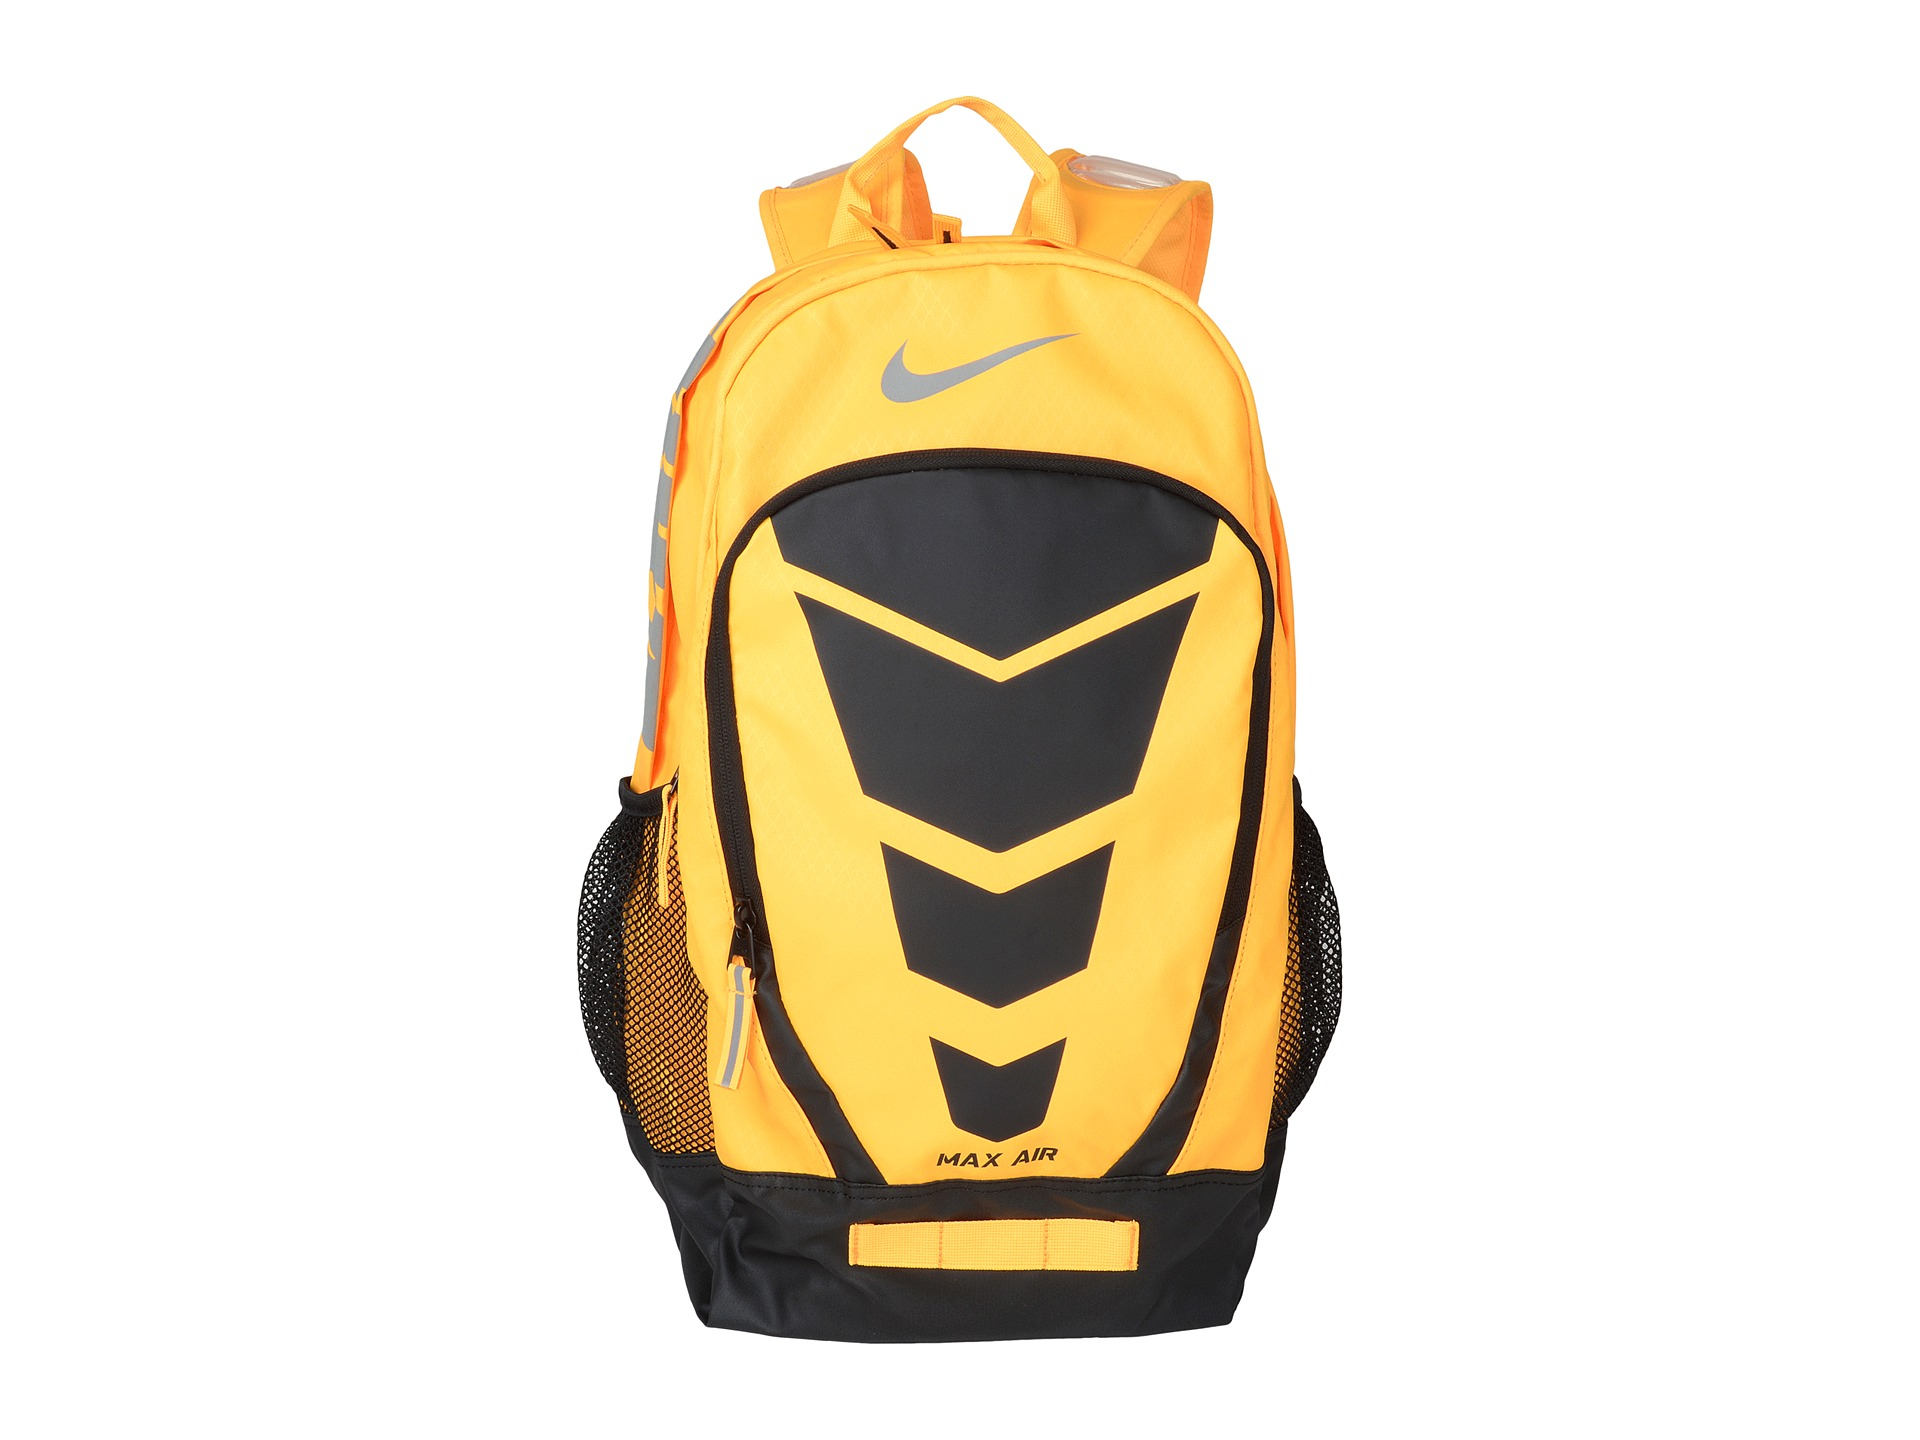 f766f611d1 Lyst - Nike Max Air Vapor Backpack Large in Black